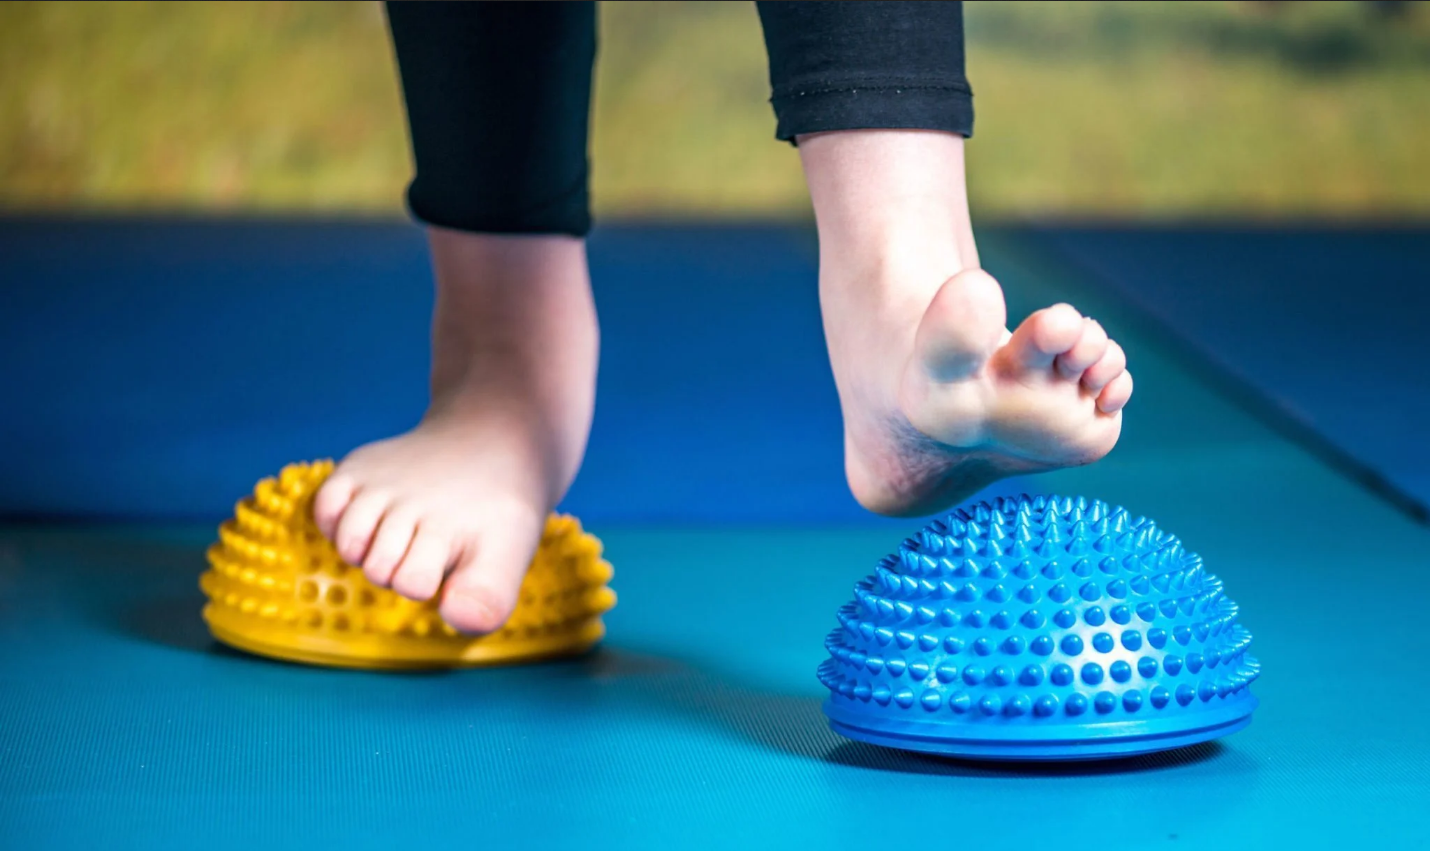 Remedies for Flat Foot Pain Caused by Your Flip-Flops